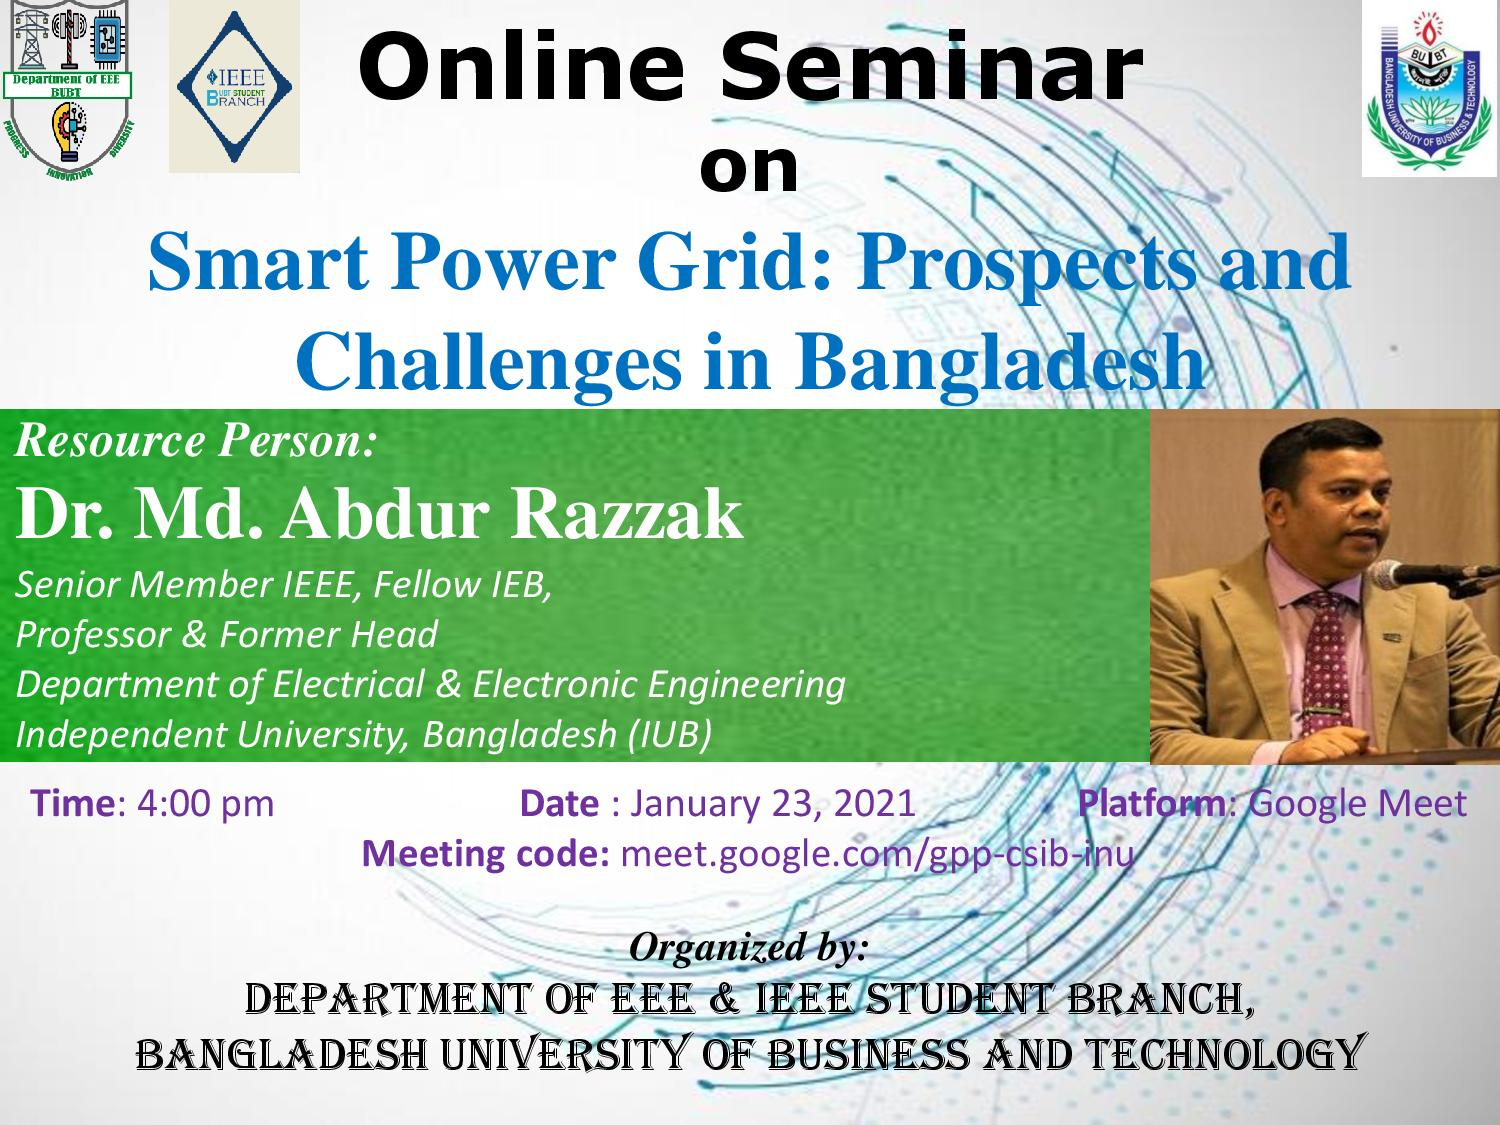 Online Seminar on Smart Power Grid: Prospects and Challenges in Bangladeash